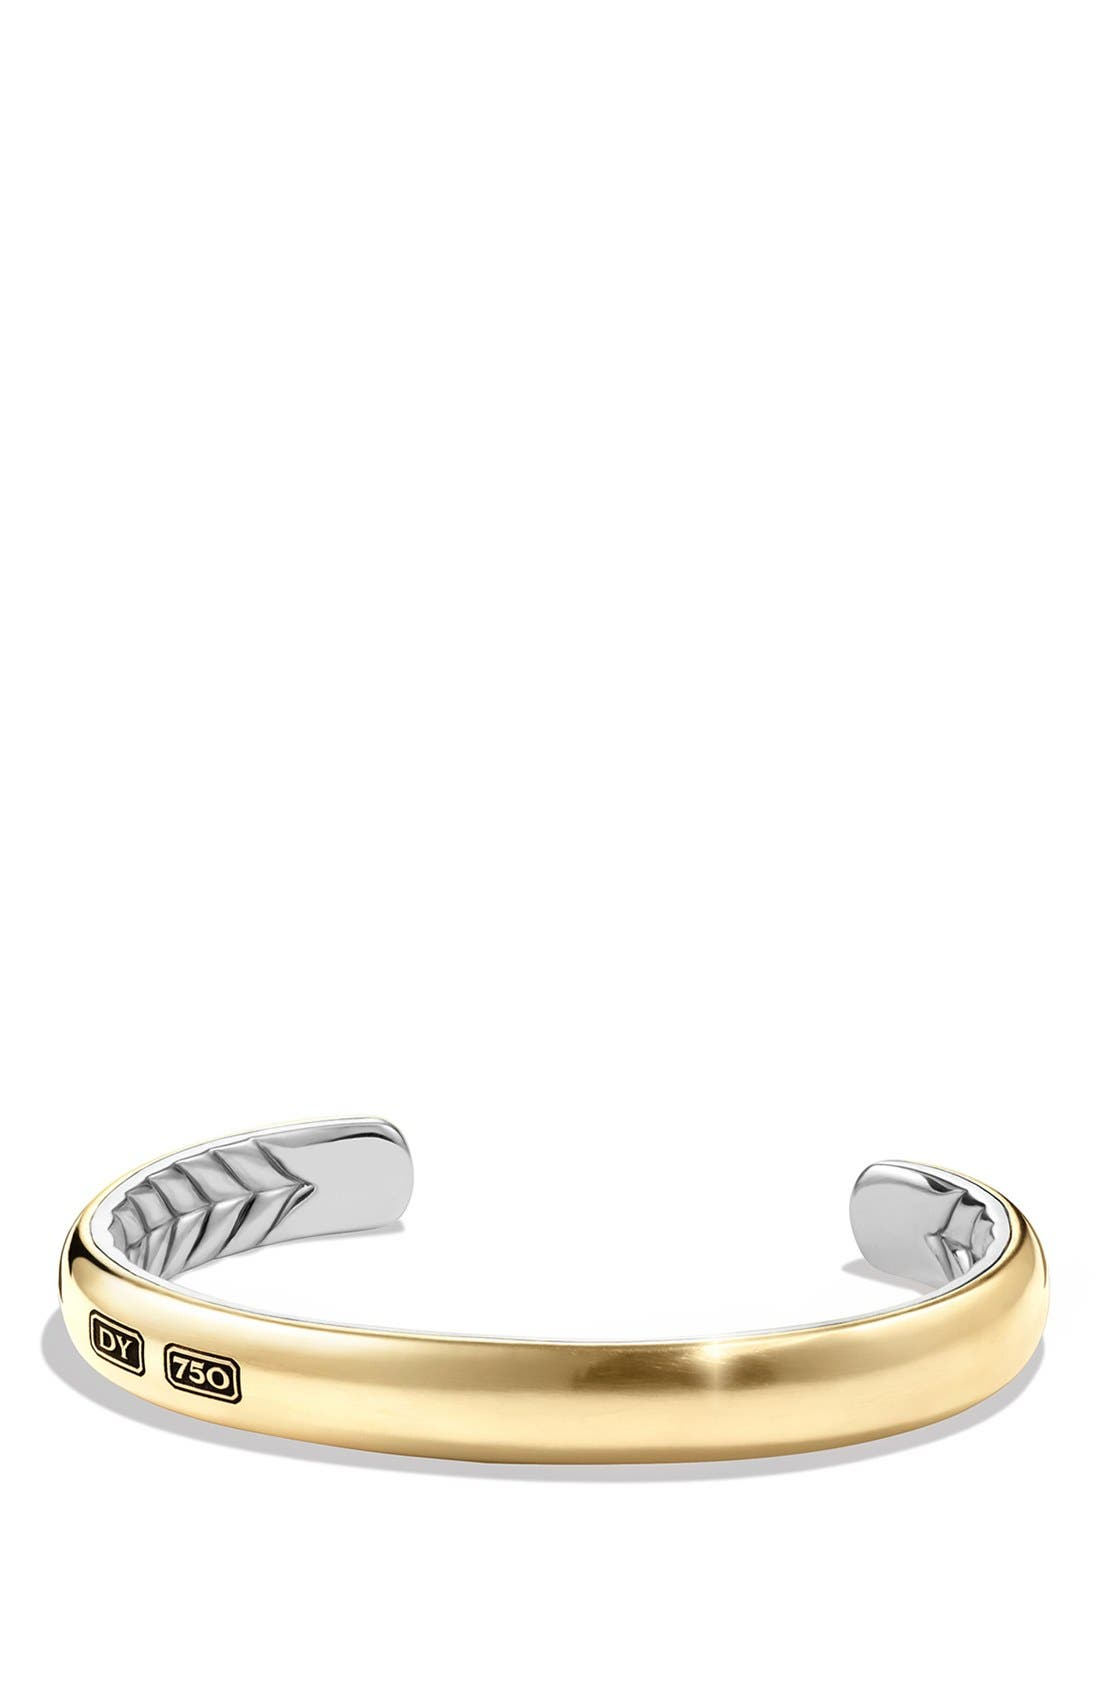 David Yurman 'Streamline' Cuff Bracelet with 18K Gold